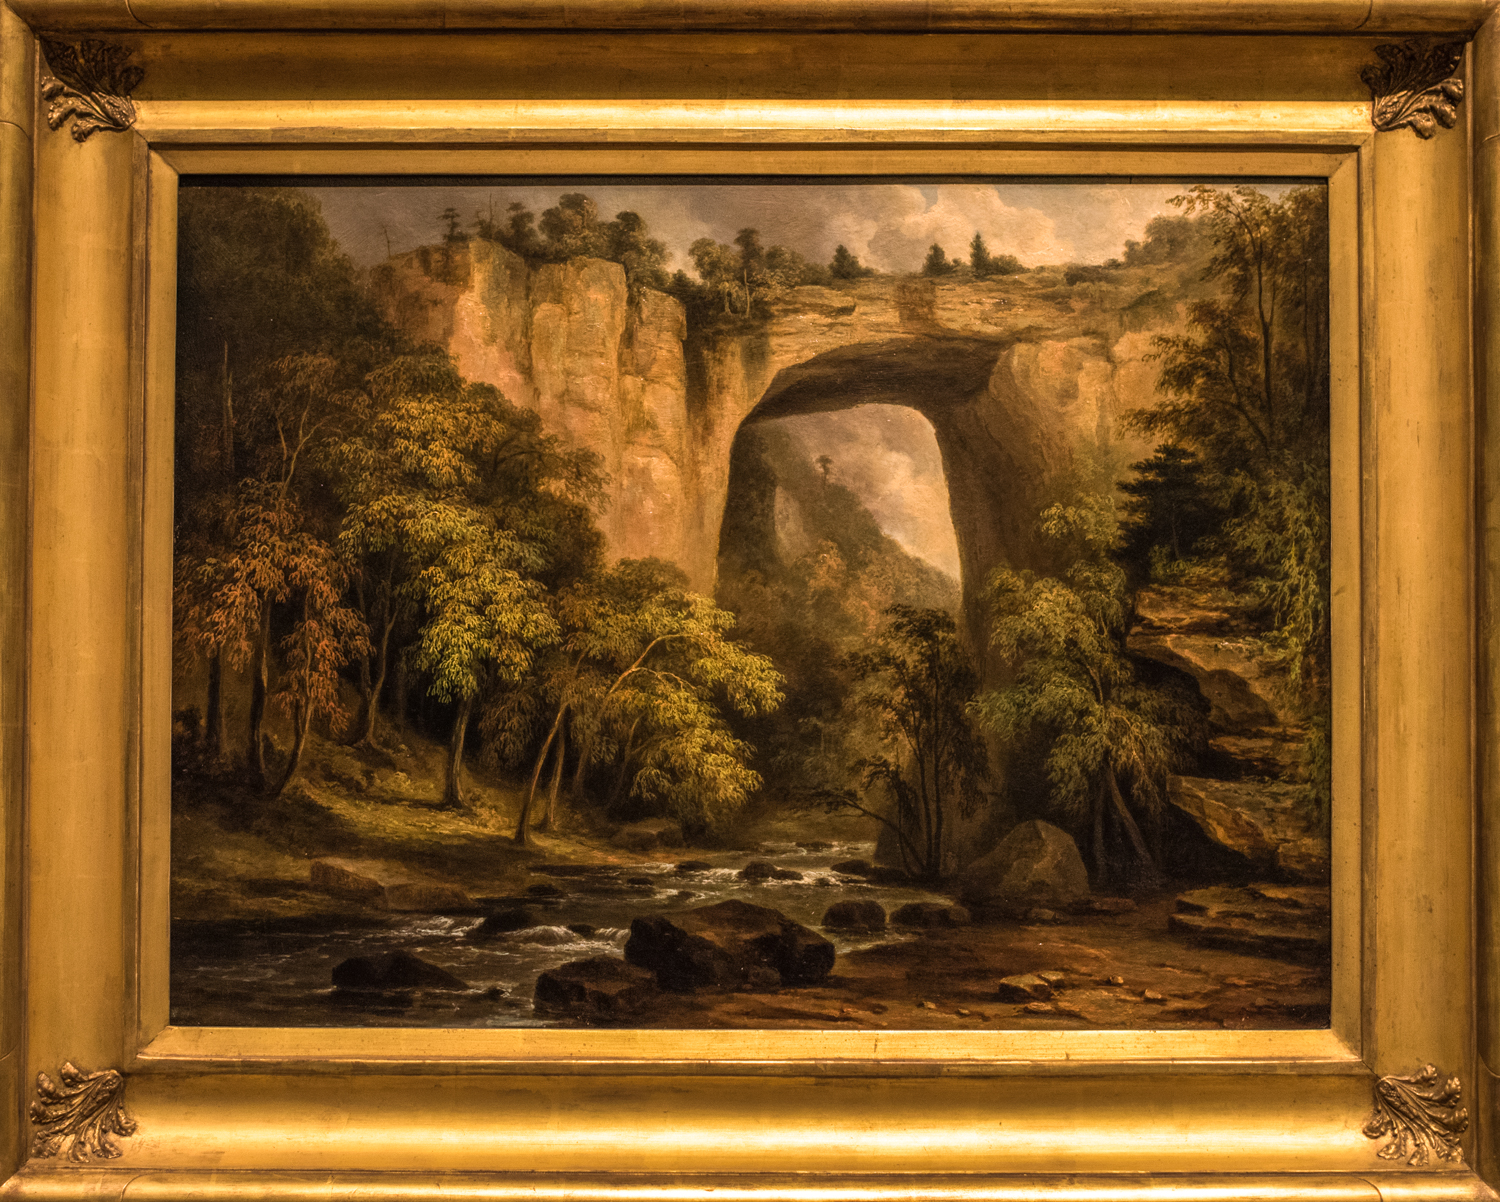 """Natural Bridge, Virginia  1835 by Jacob C. Ward (1809-1891) Oil on panel. """"Jacob Ward painted the   Natural Bridge in Virginia so that viewers gaze at the geological marvel from below. This low vantage point emphasizes the 200-foot height of the bridge. Listed among the natural wonders of the world, the Natural Bridge was first owned by Thomas Jefferson, who received it from King George III in 1774. During the early 19th century, many artists rendered the Natural Bridge because the site ranked with Niagara Falls as one of the new nation's most inspiring landmarks and tourist attractions. Such natural monuments were thought to distinguish America from Europe."""""""